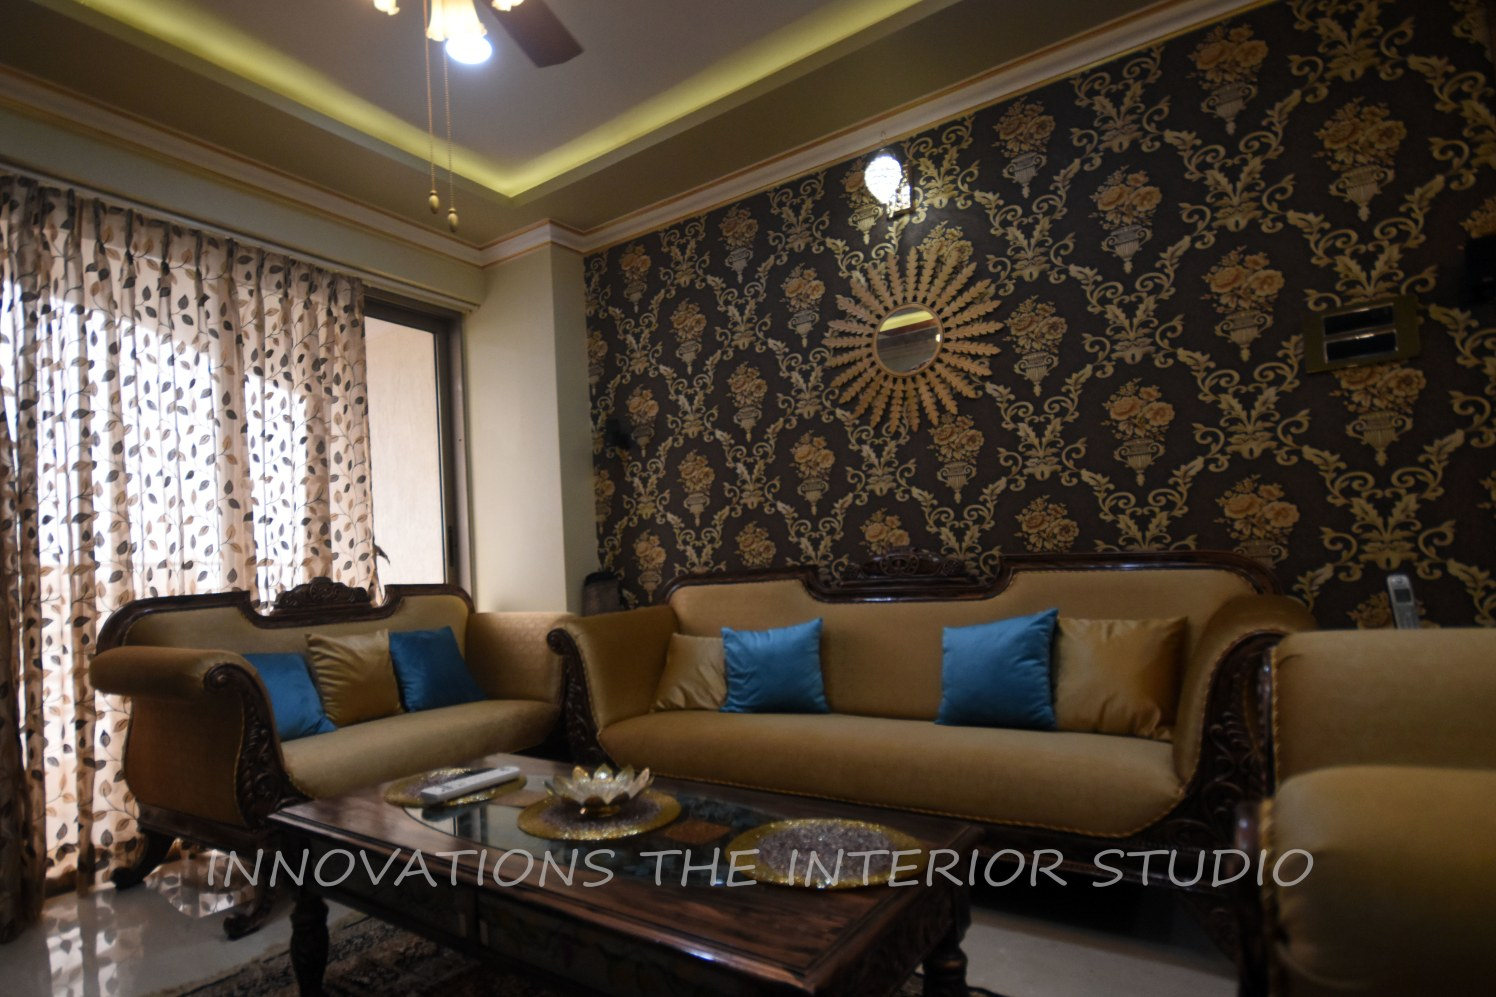 by Innovations - The Interior Studio